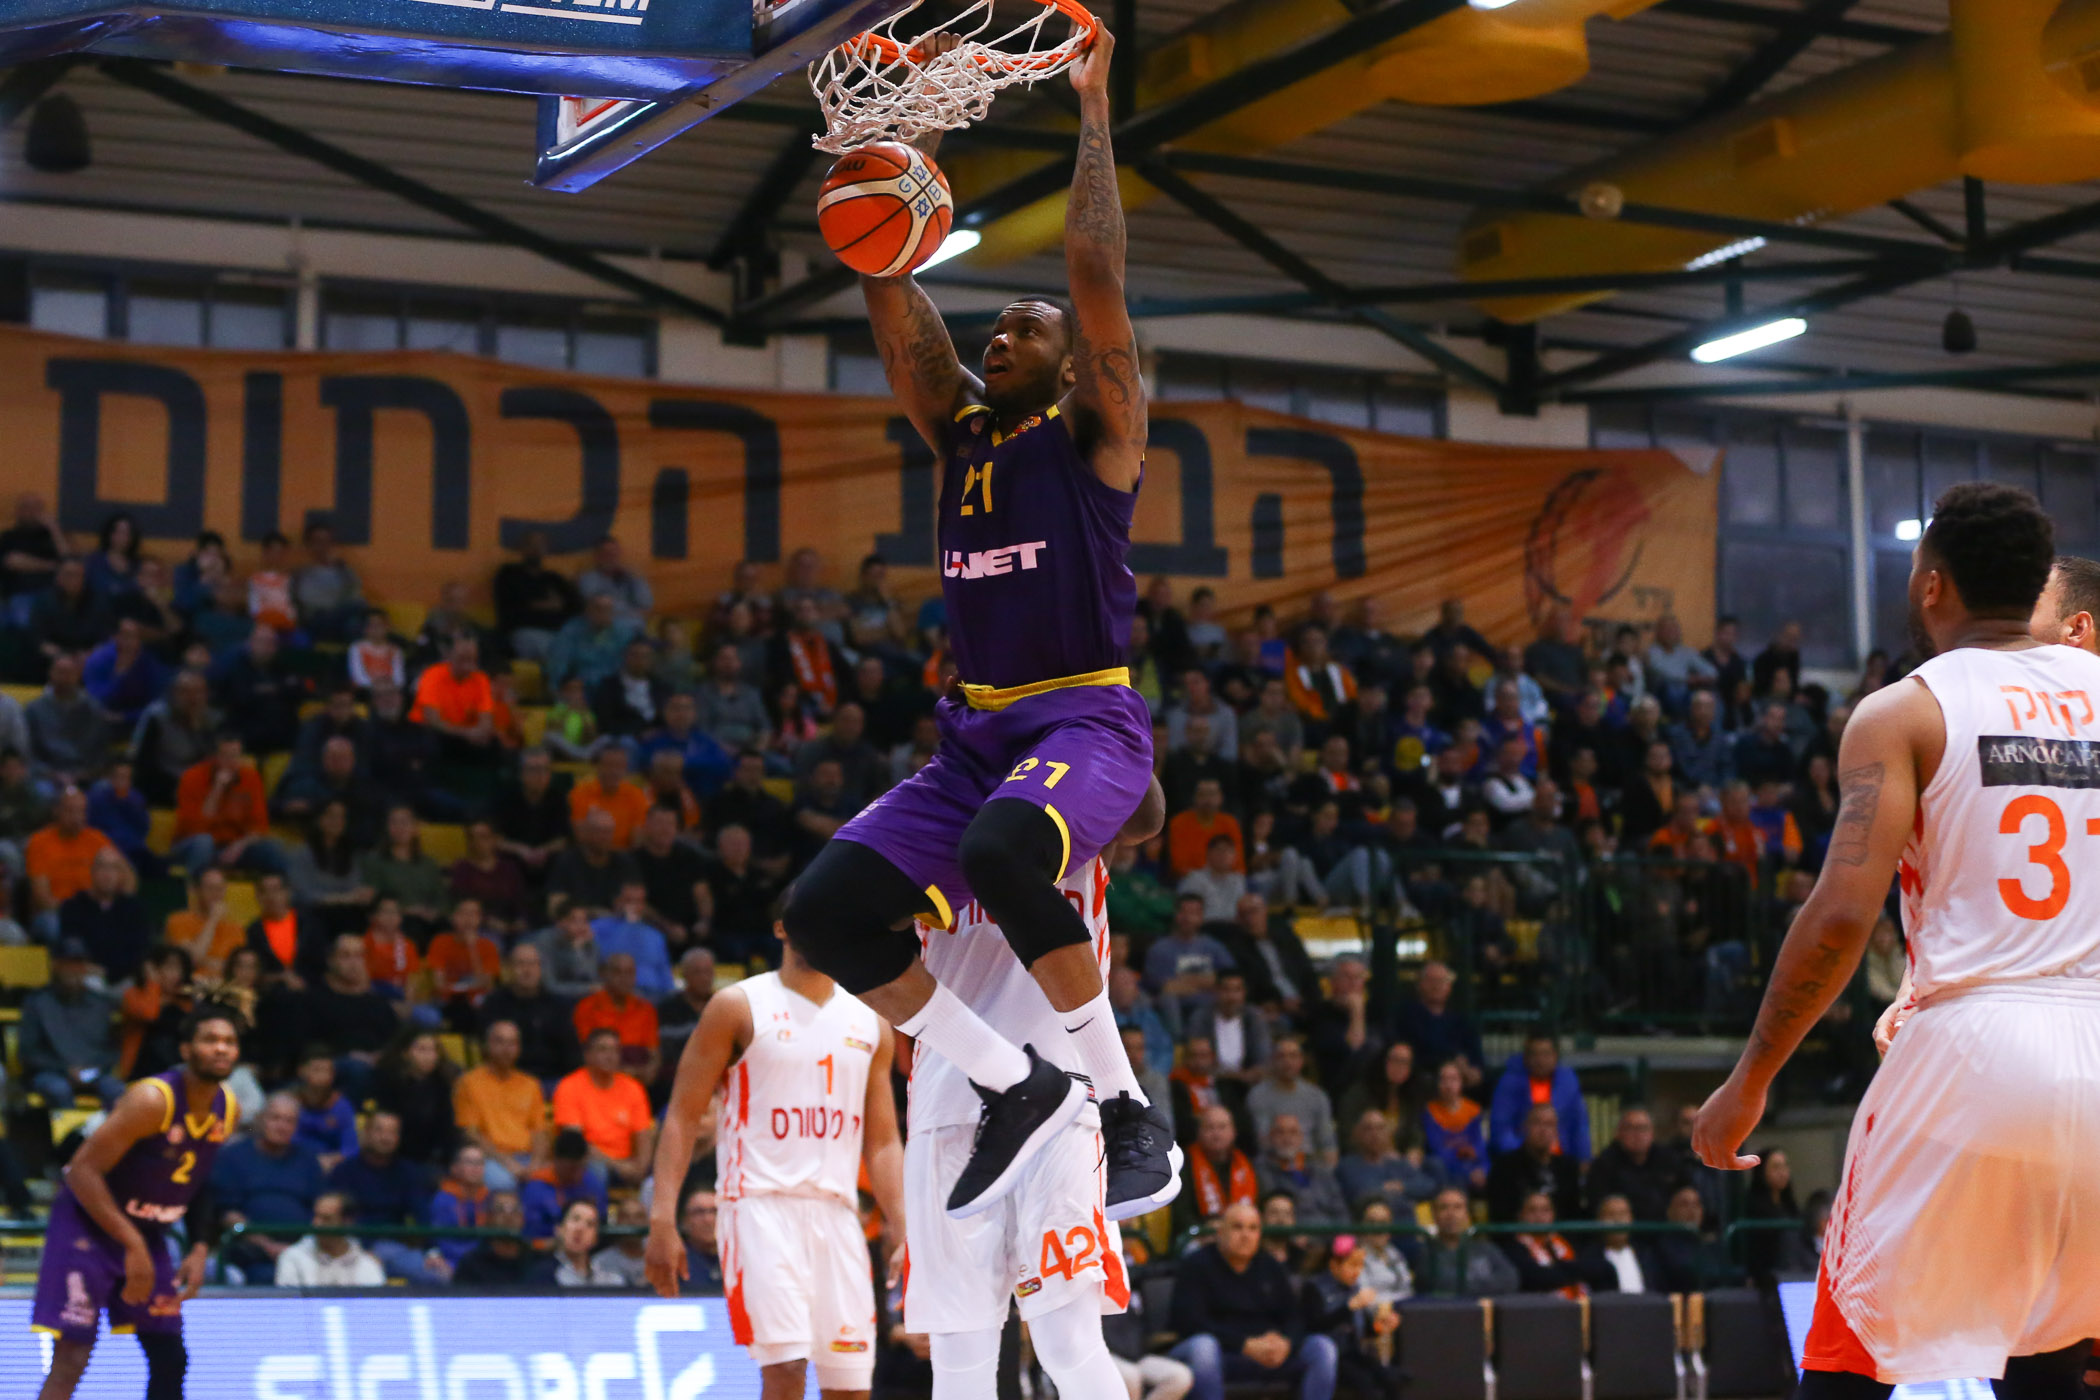 Day 21: Ness Ziona - Hapoel Holon ...